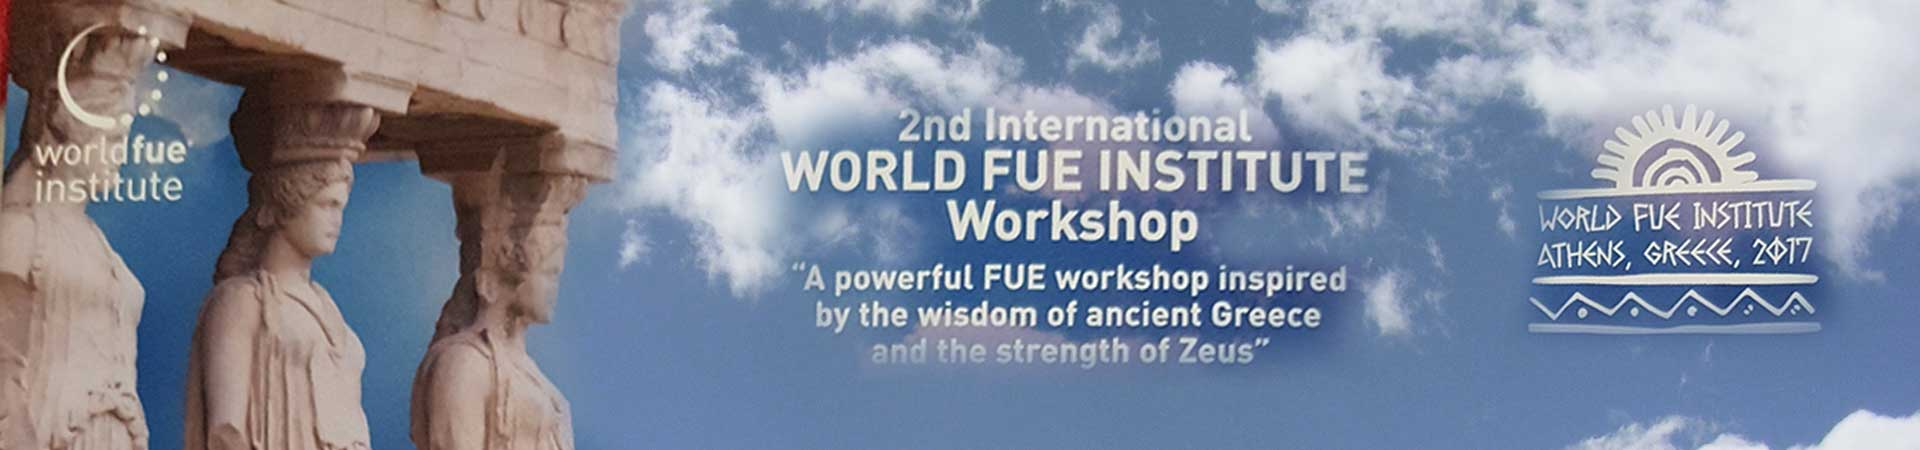 2nd International World FUE Institute Workshop in Athens